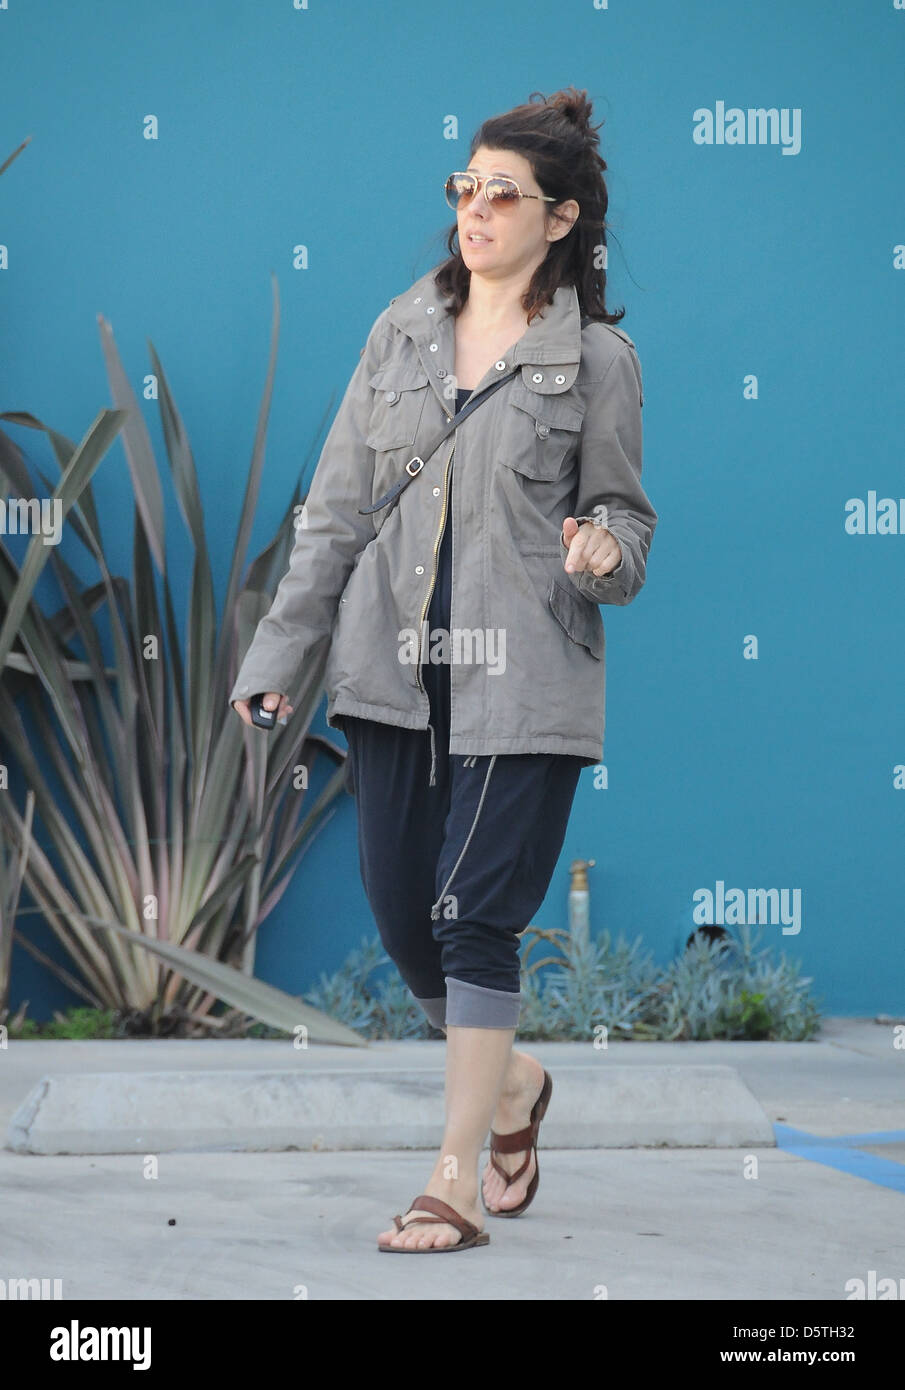 Marisa Tomei leaving Yoga class in West Hollywood Los Angeles, California - 13.03.12 - Stock Image